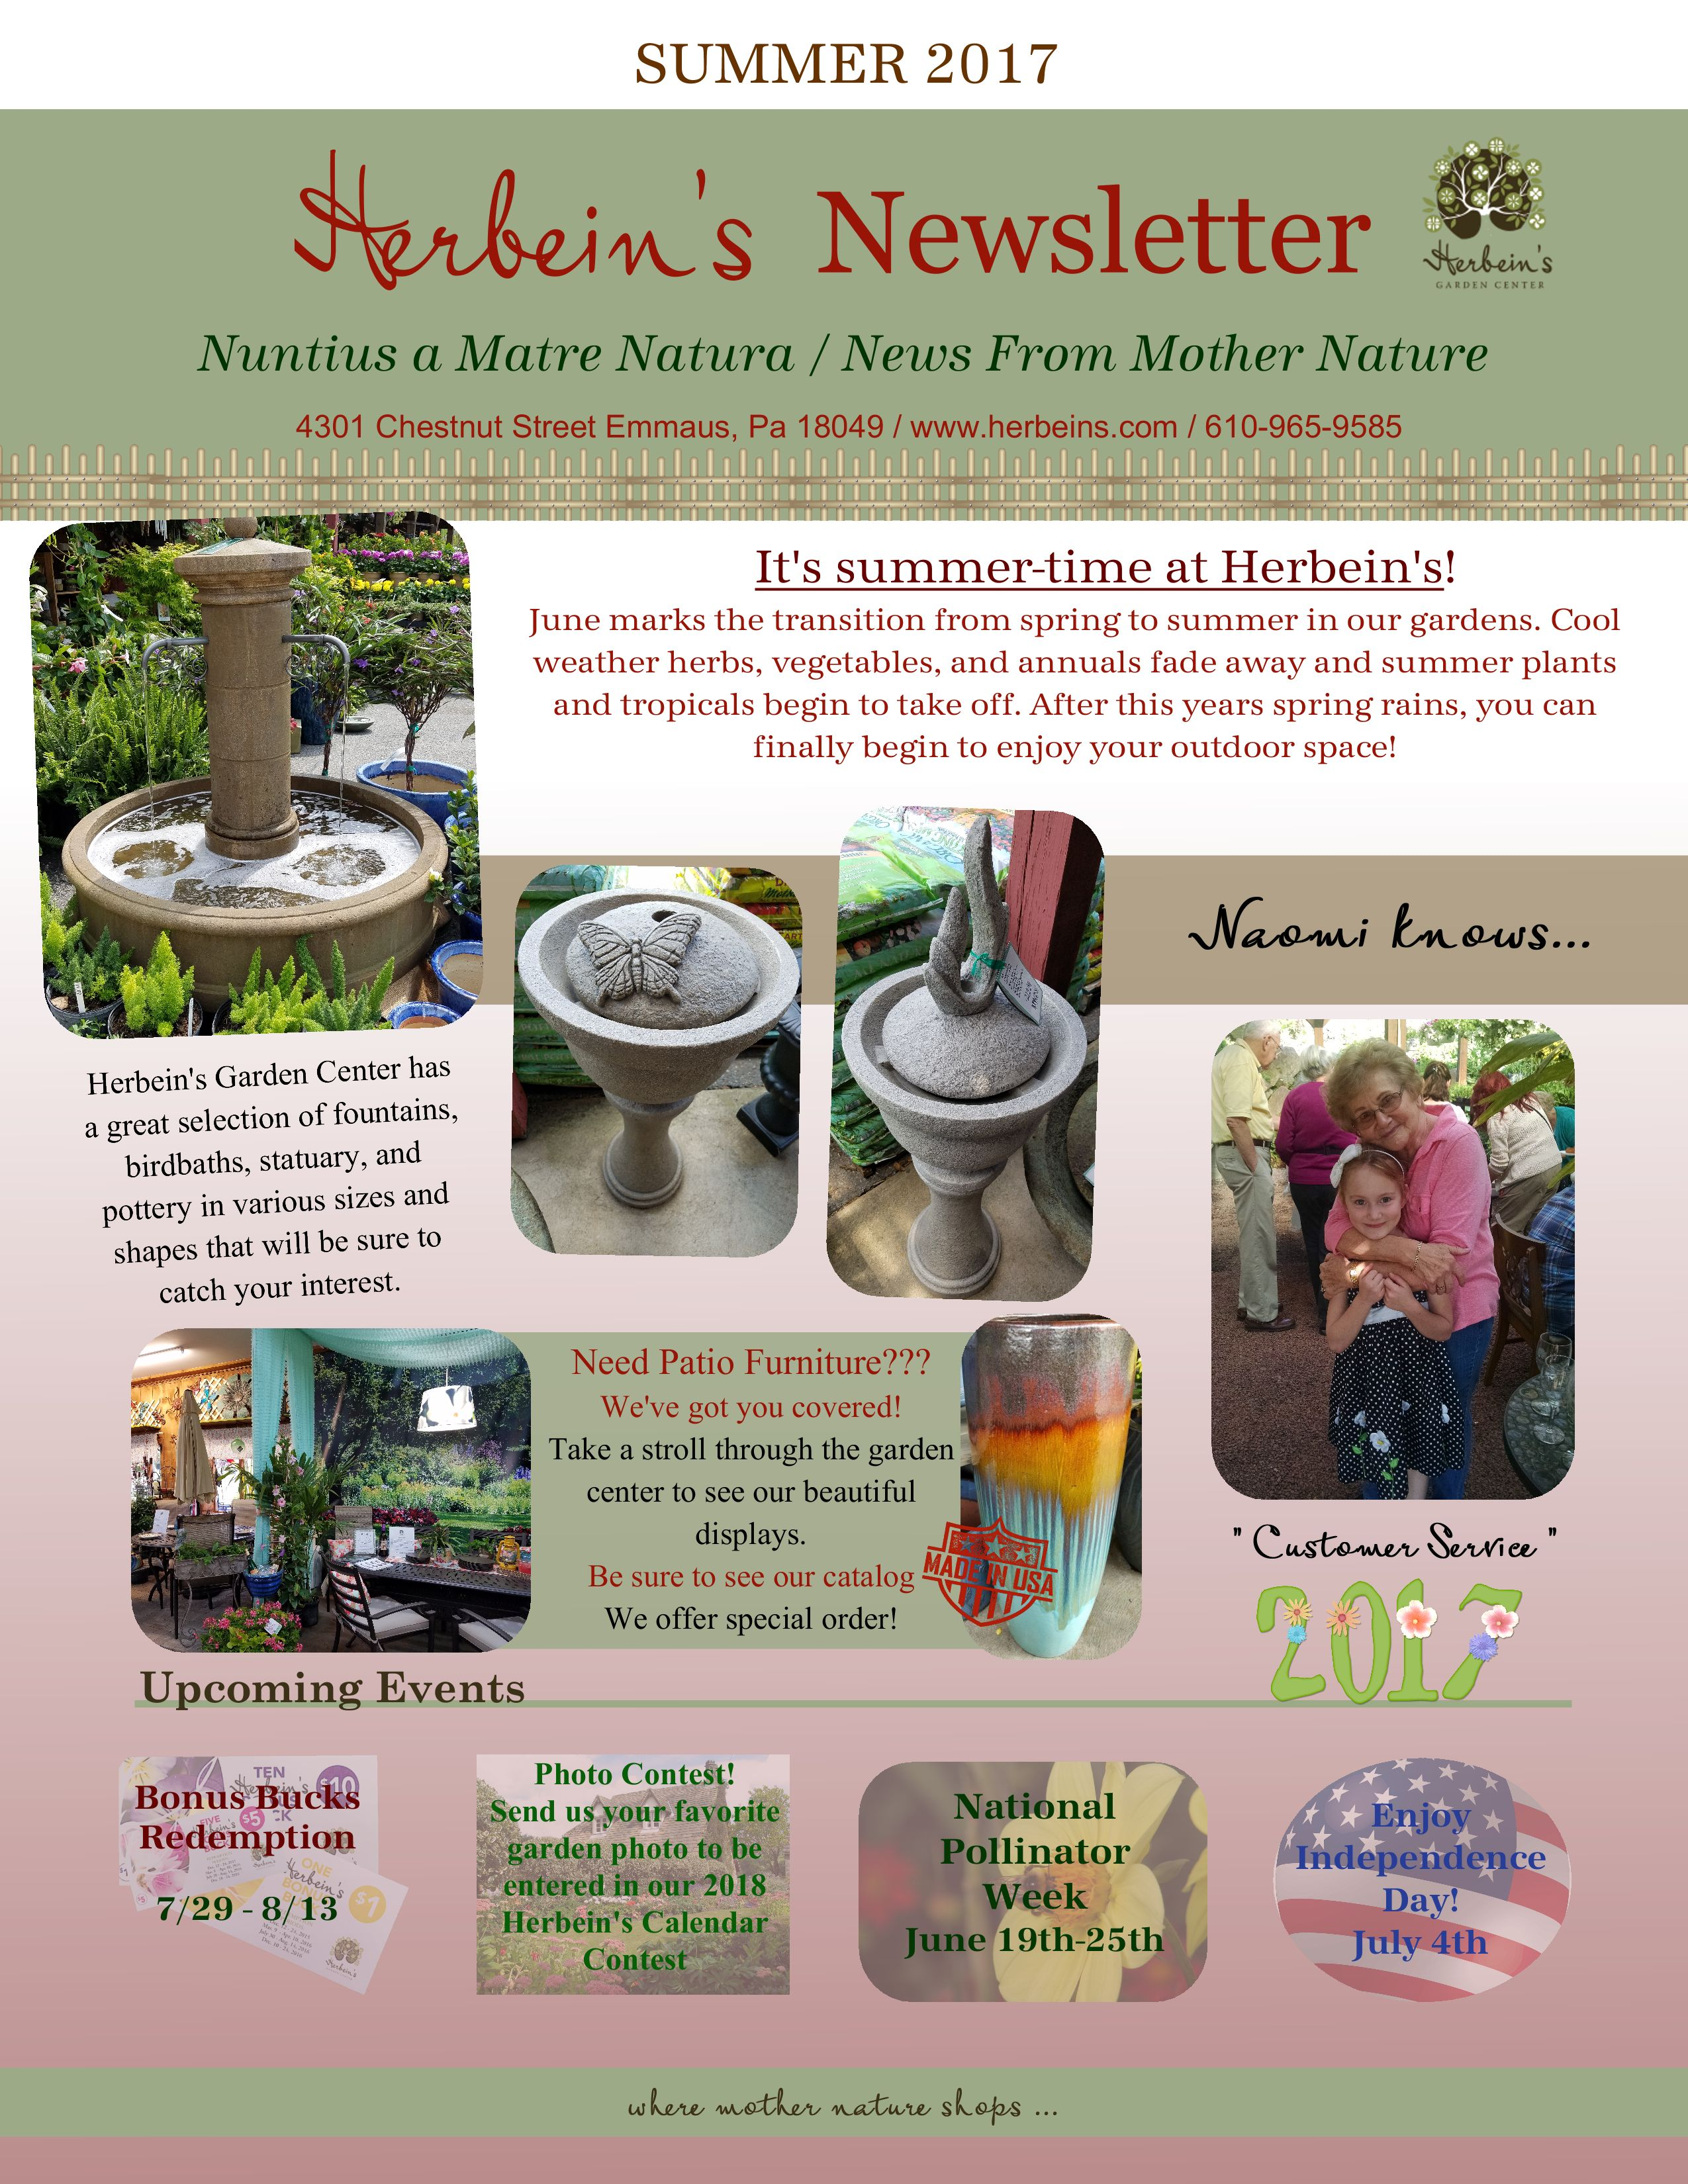 2017 Summer Newsletter Herbeins Garden Center Emmaus Pa